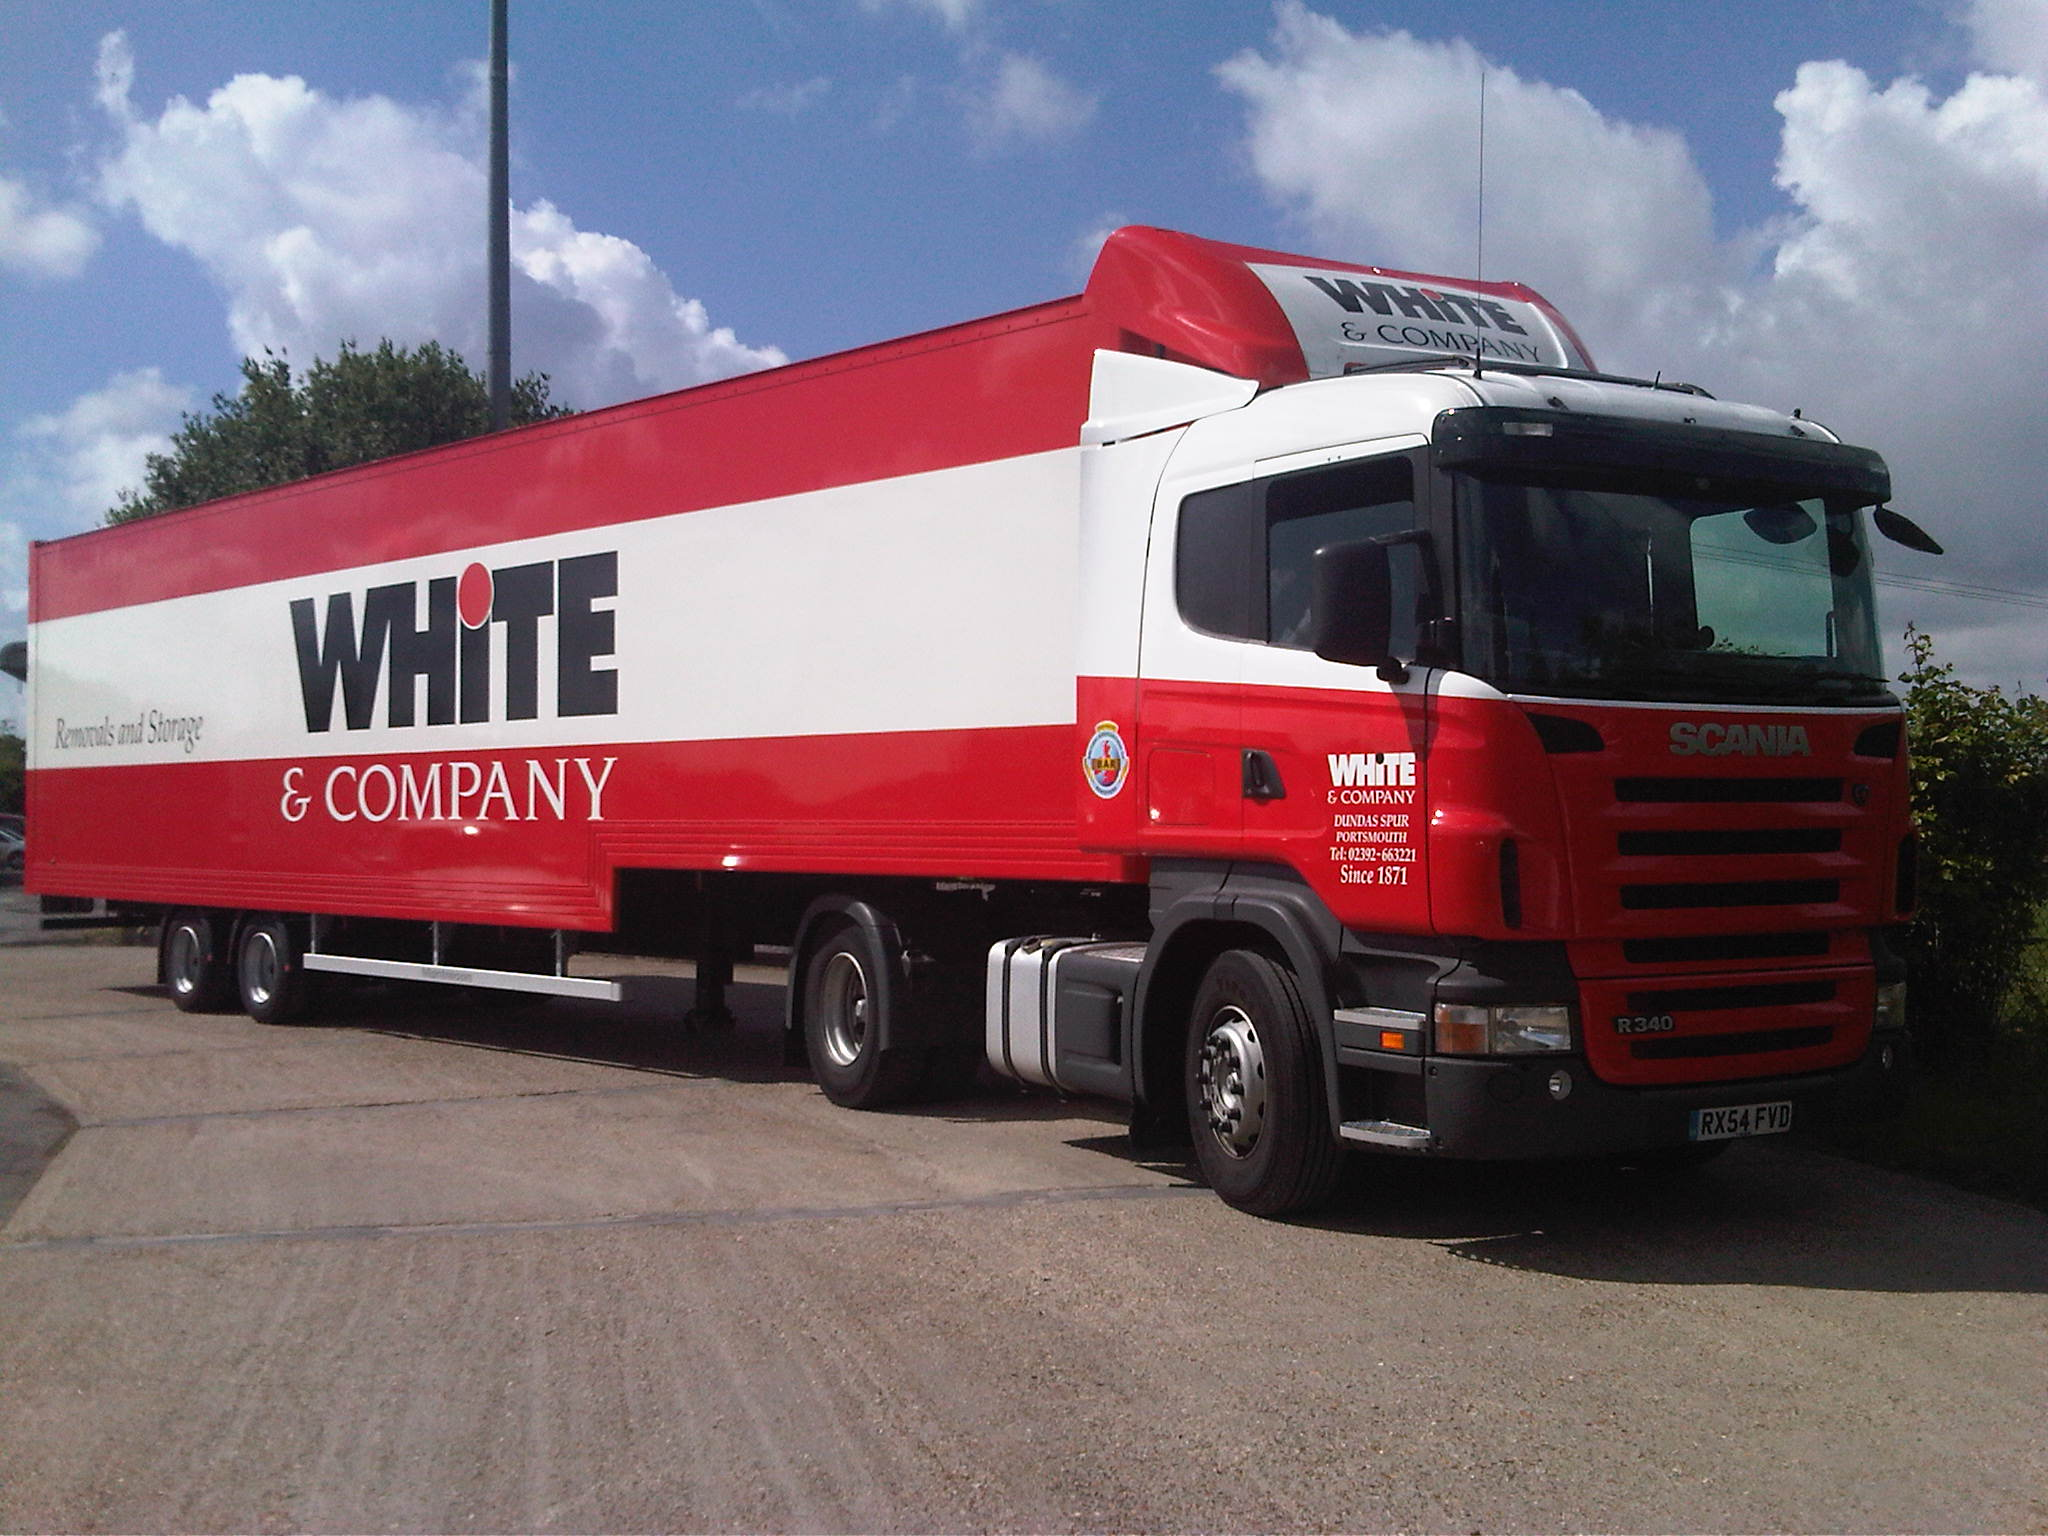 Removal Companies Serving Oman: International Moves: White & Company